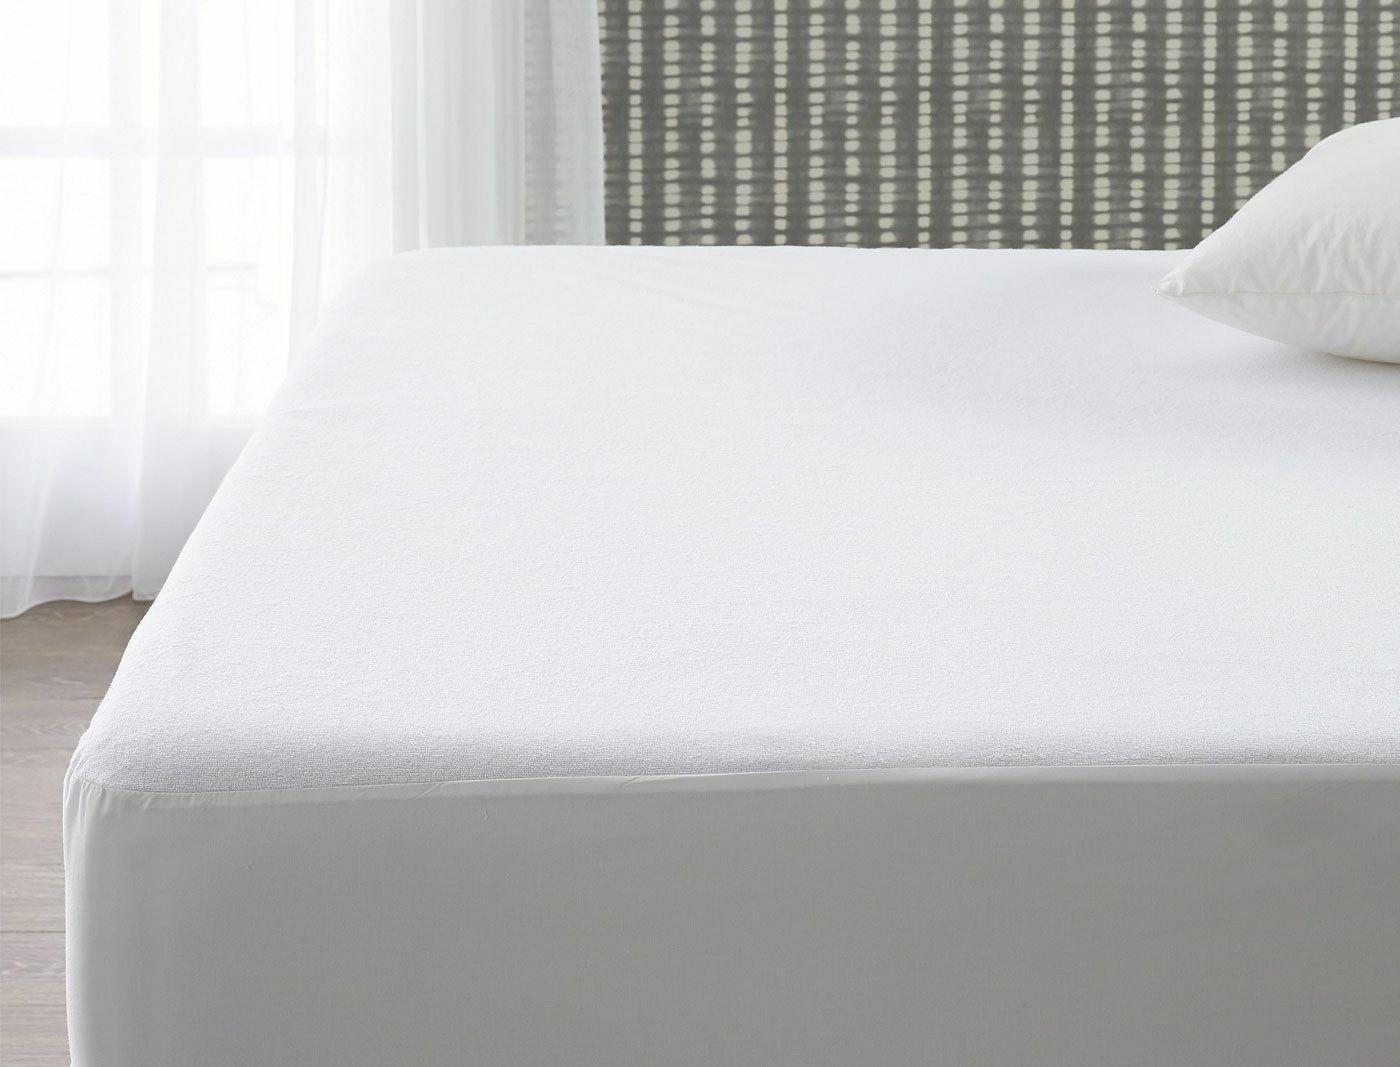 King Waterproof Pad Bed Cover Hypoallergenic Soft